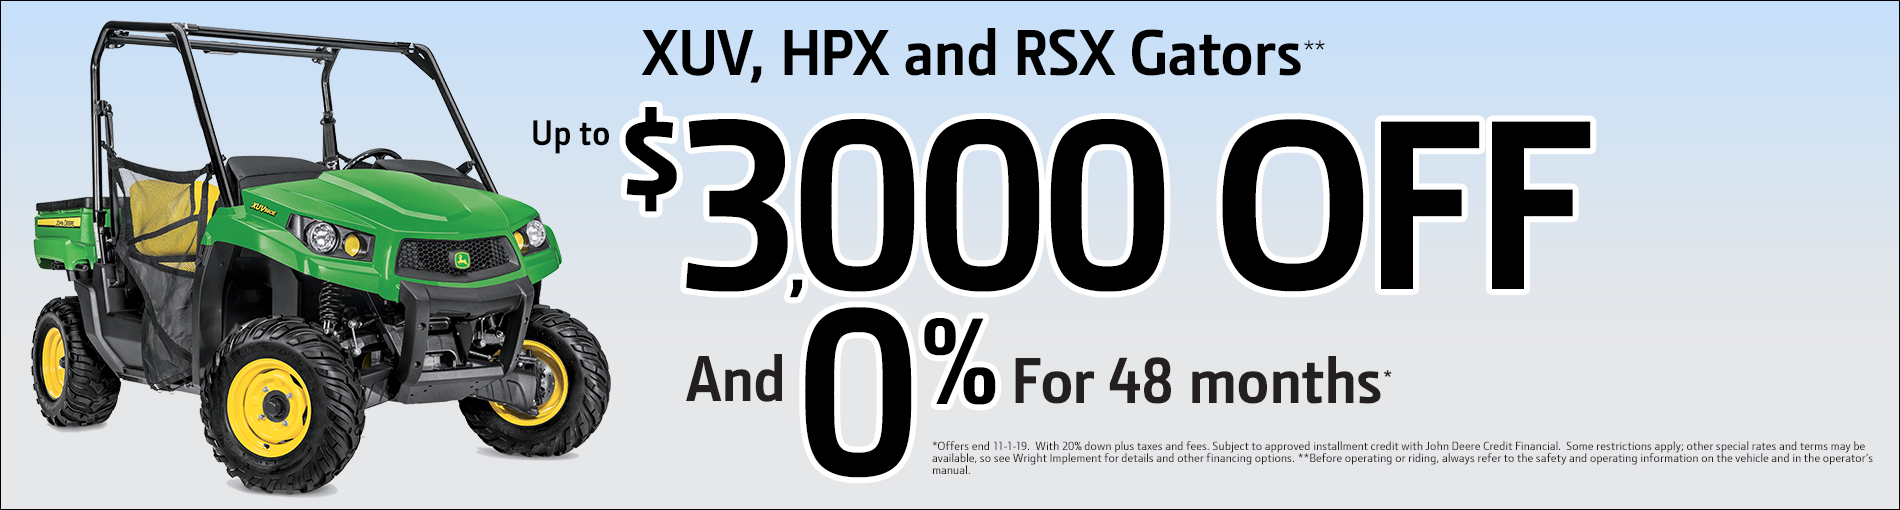 XUV, HPX, and RSX Gators $3,000 off and 0% for 48 mo